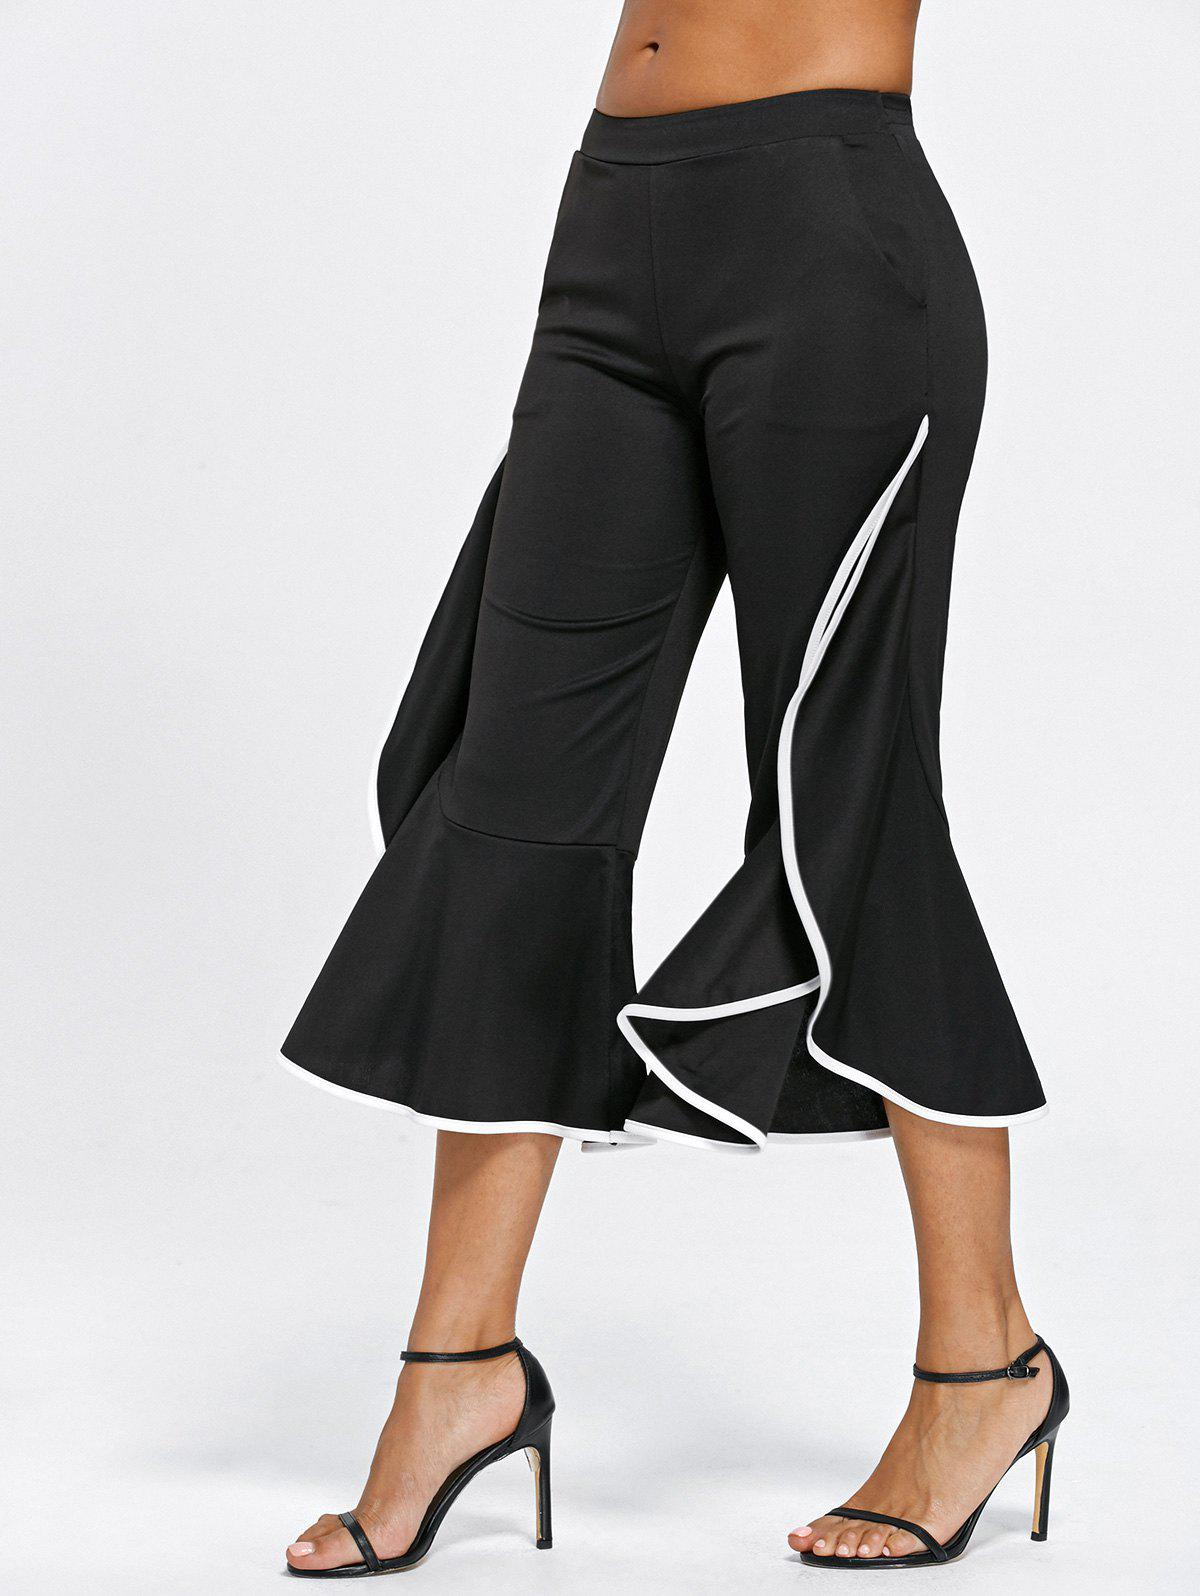 Ruffle Trim Flare PantsWOMEN<br><br>Size: L; Color: BLACK; Style: Fashion; Length: Ninth; Material: Polyester,Spandex; Fit Type: Loose; Waist Type: Mid; Closure Type: Elastic Waist; Pattern Type: Solid; Pant Style: Wide Leg Pants; Weight: 0.3400kg; Package Contents: 1 x Pants;